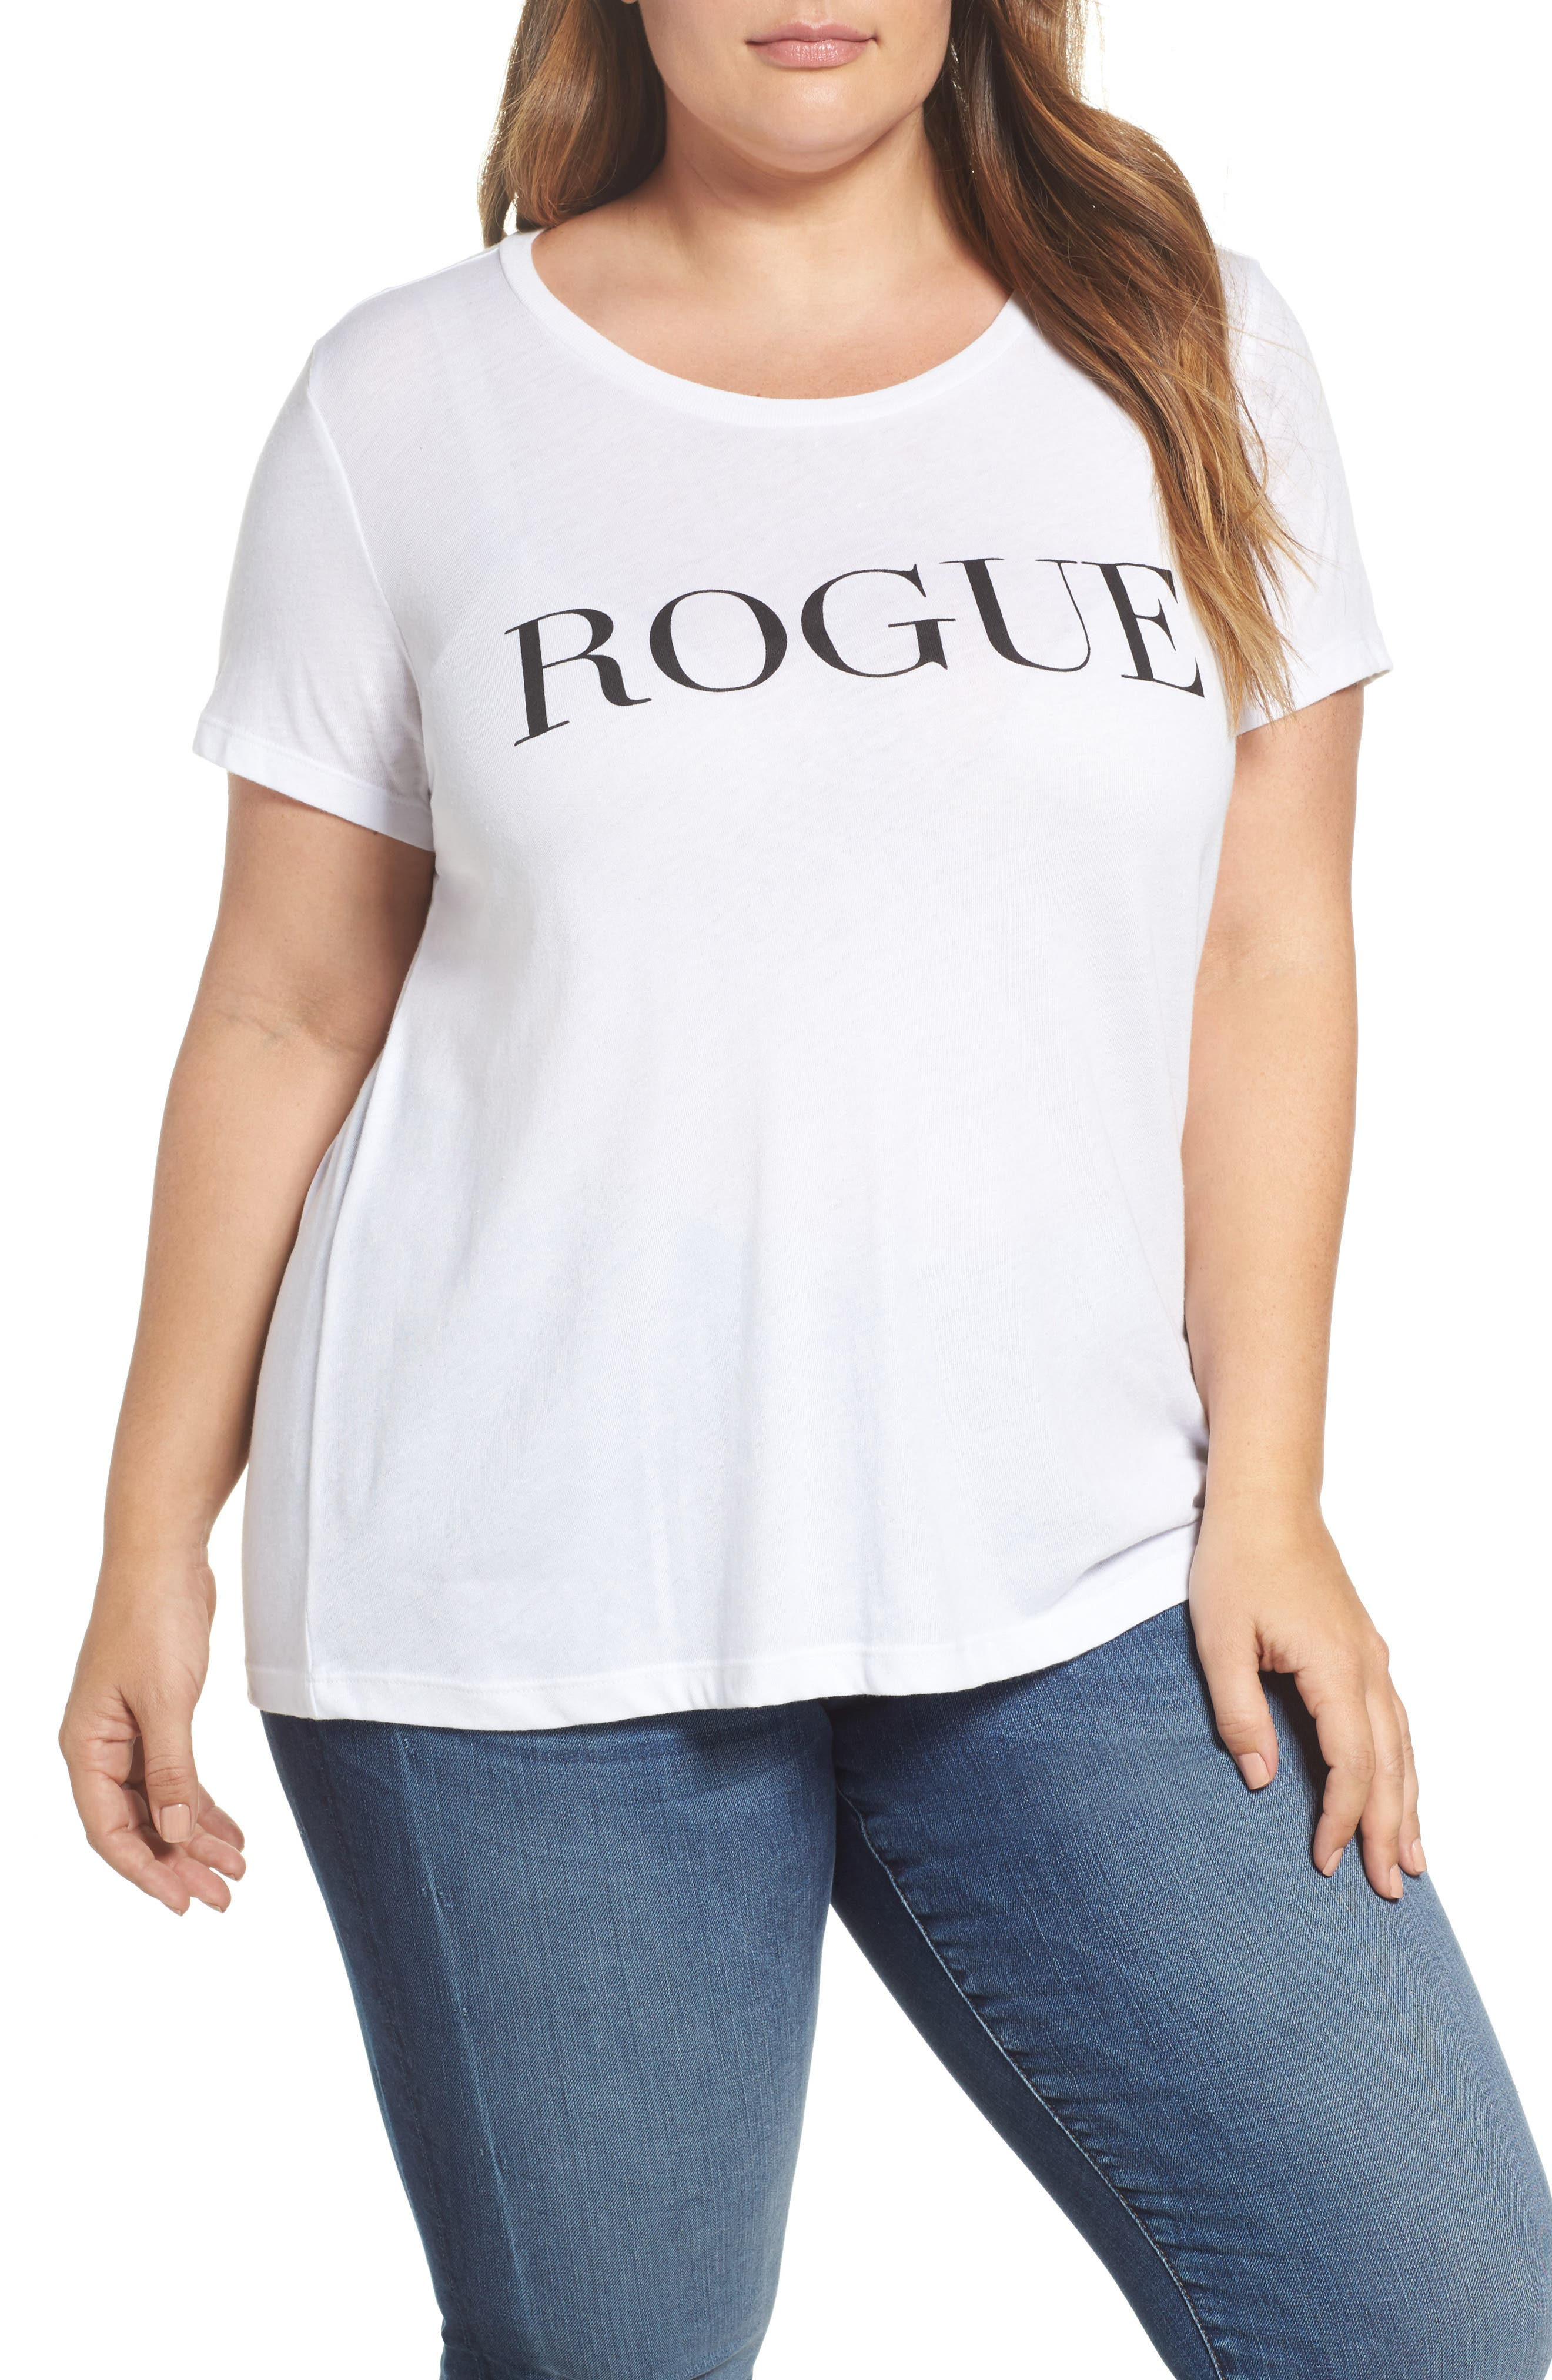 Alternate Image 1 Selected - Sub_Urban Riot Rogue Graphic Tee (Plus Size)